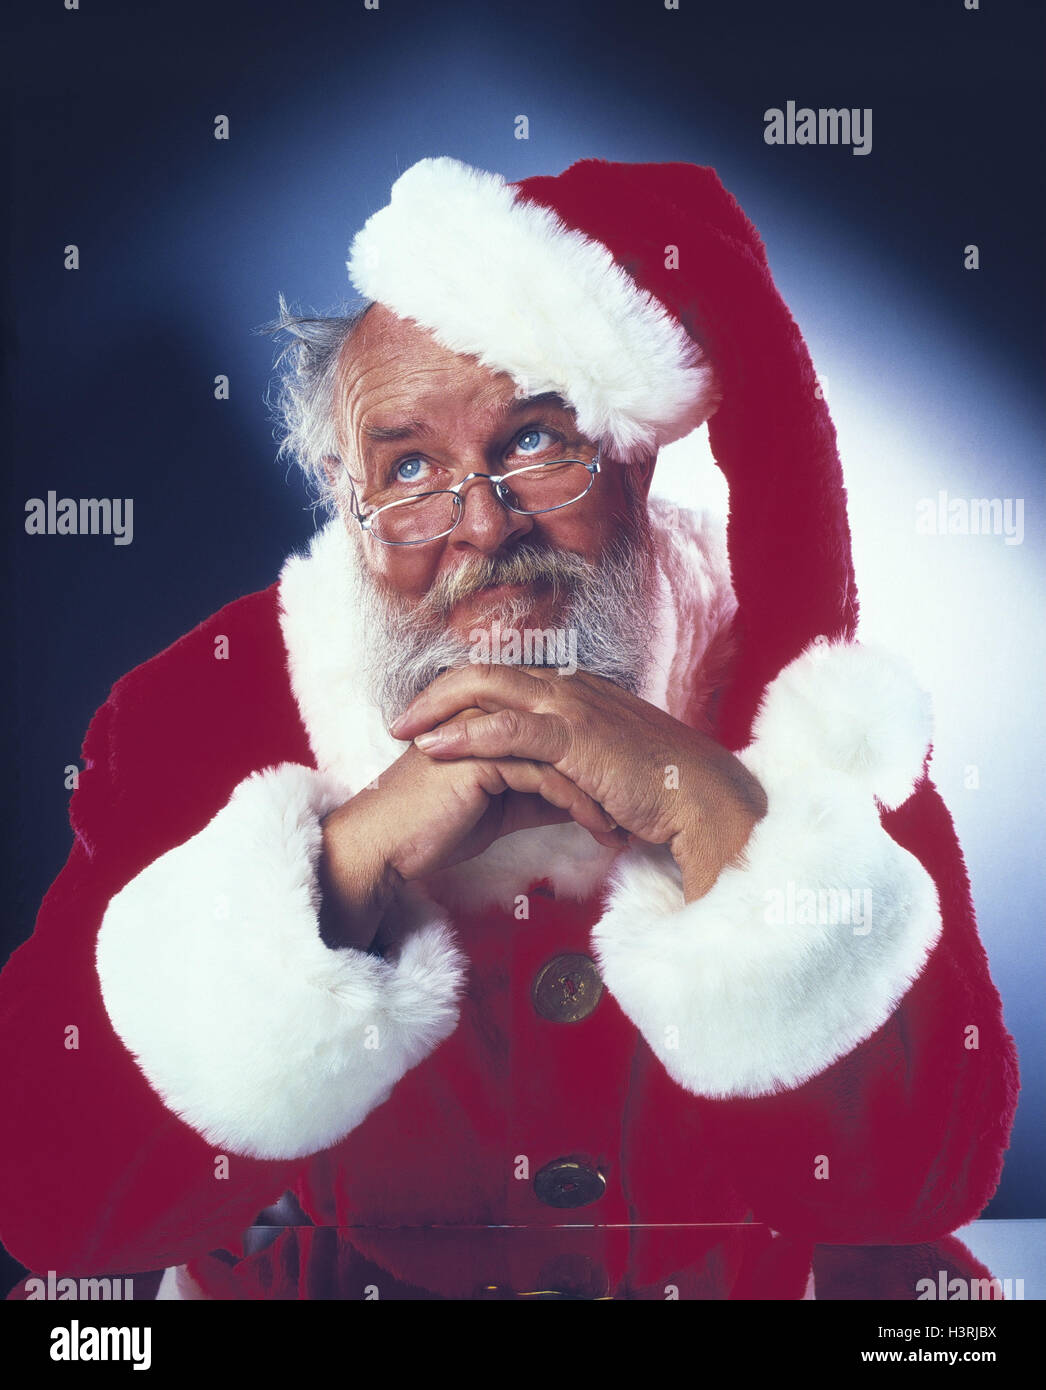 Santa Claus, gesture, desperation, half portrait, Christmas, yule tide, Santa, exhausts, raise the eyes thoughtful, - Stock Image